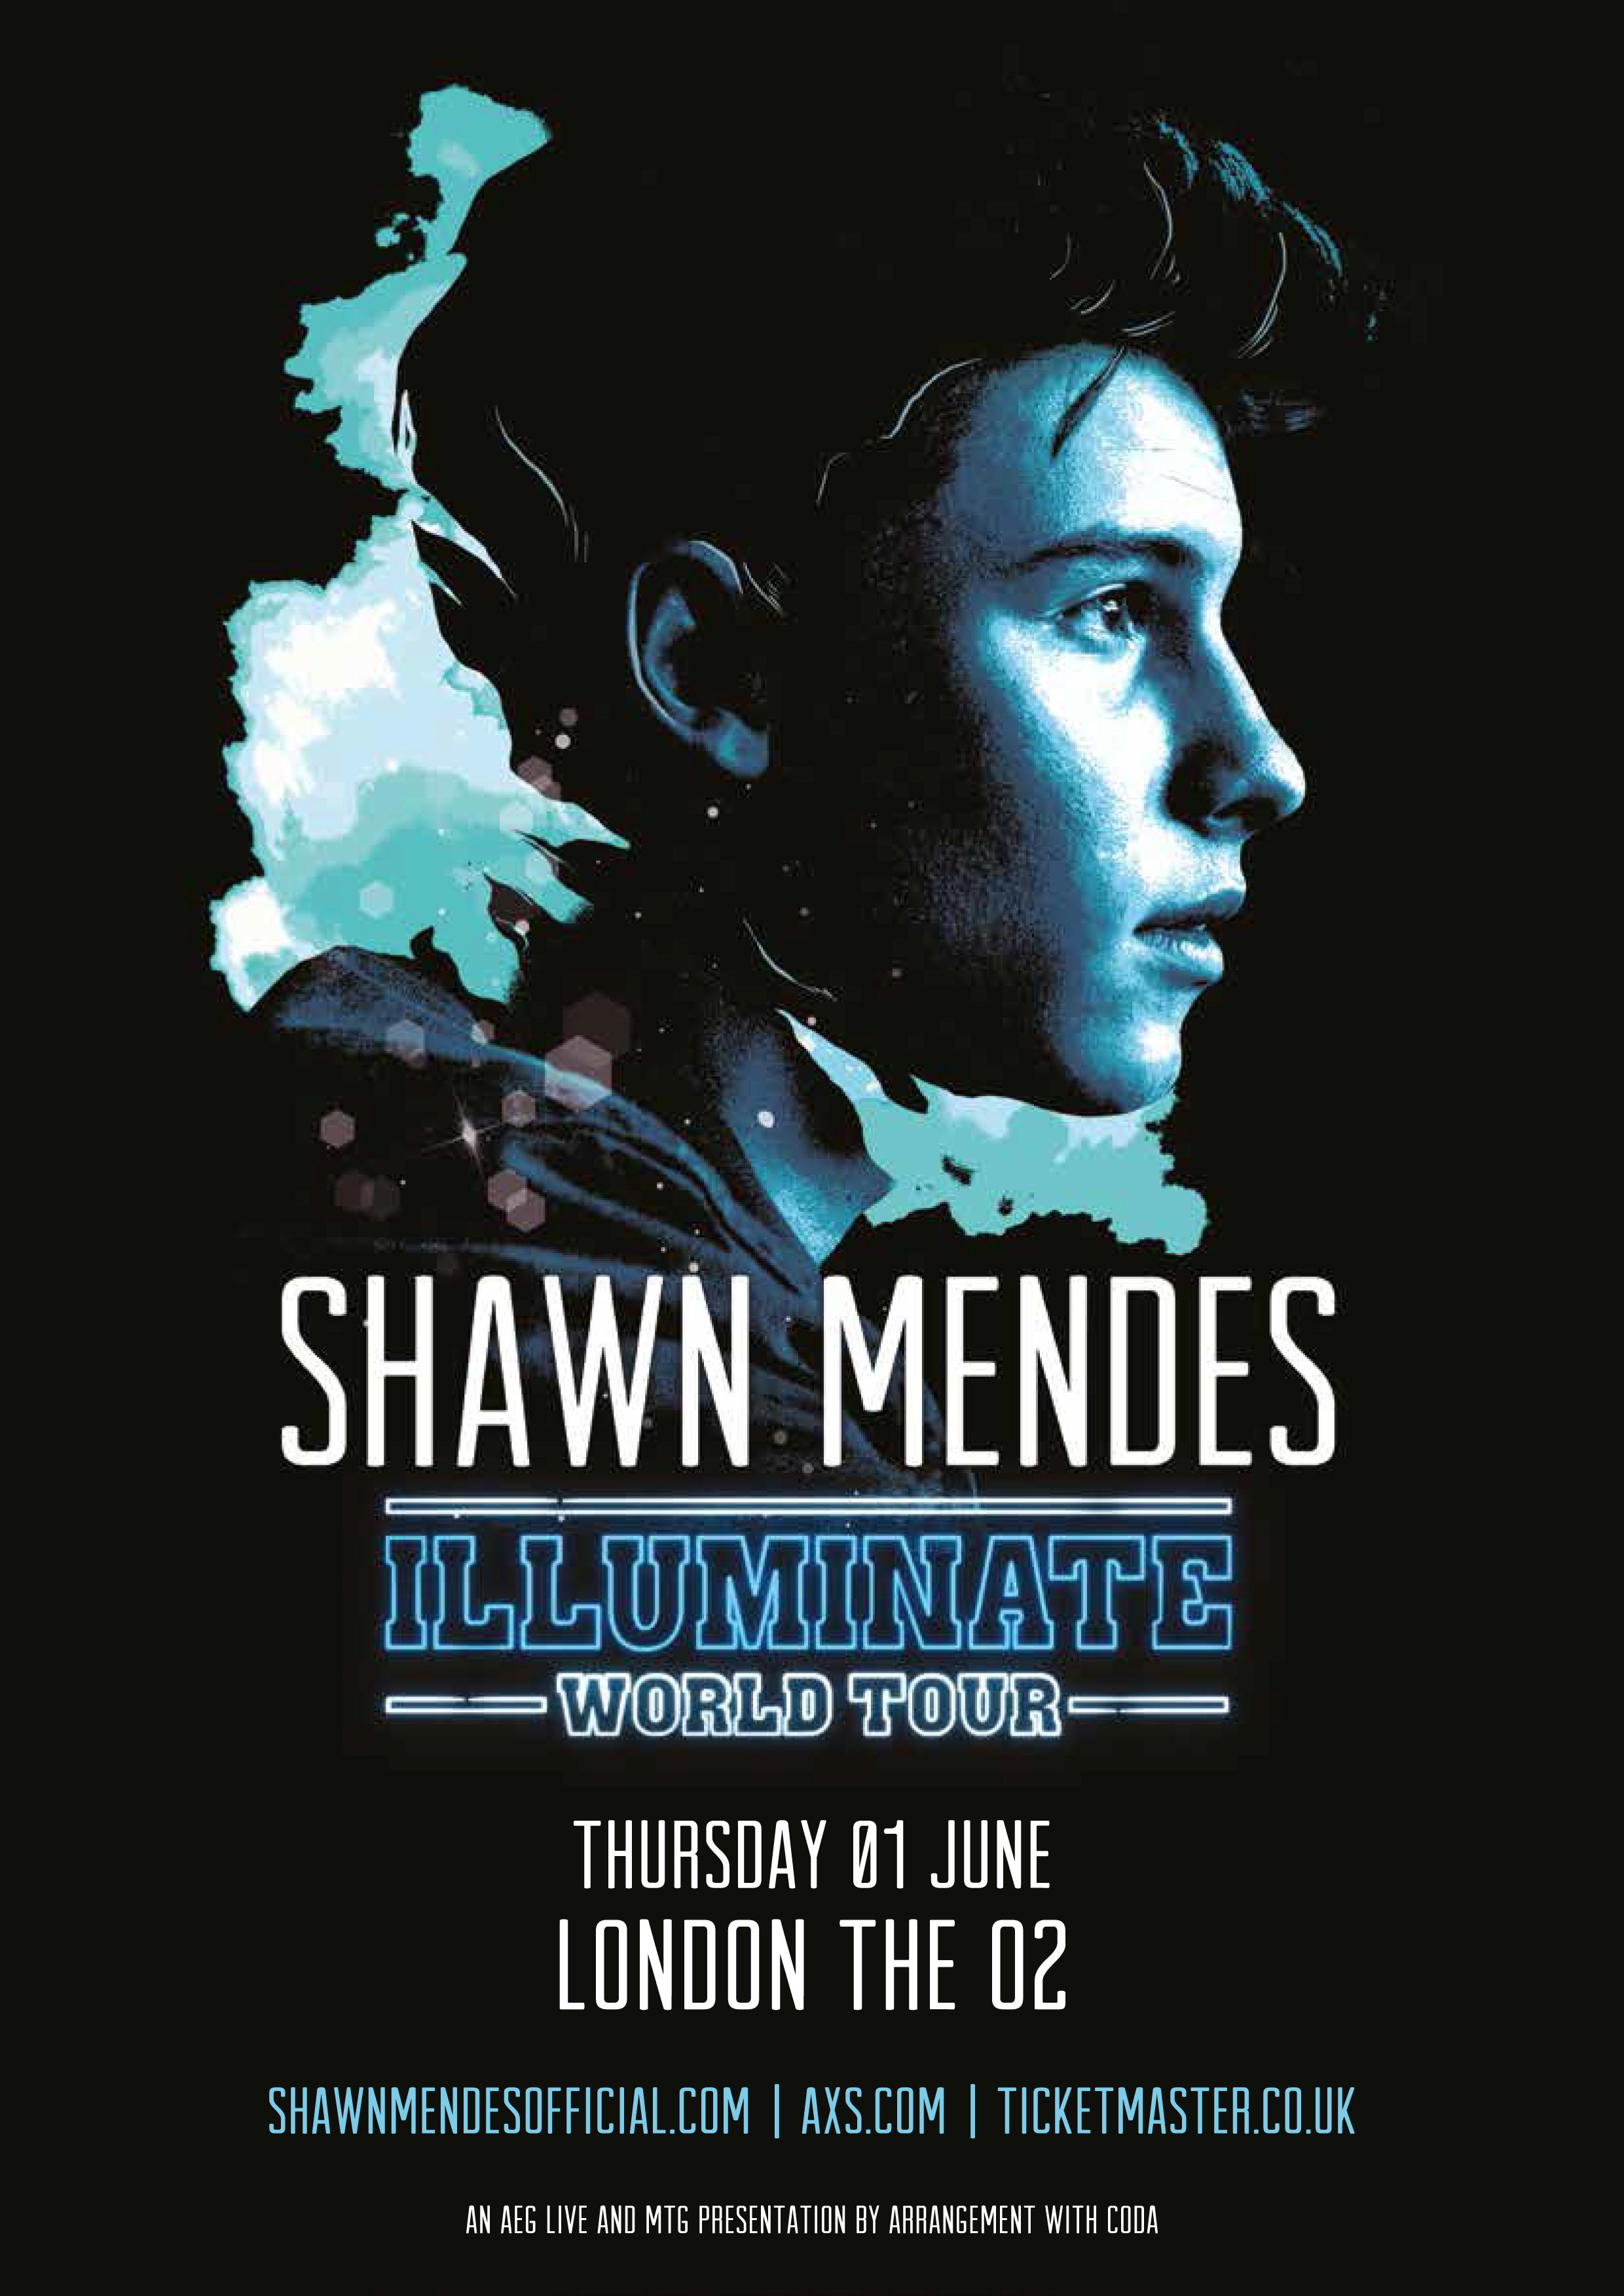 Shawn Mendes Live in London 2017